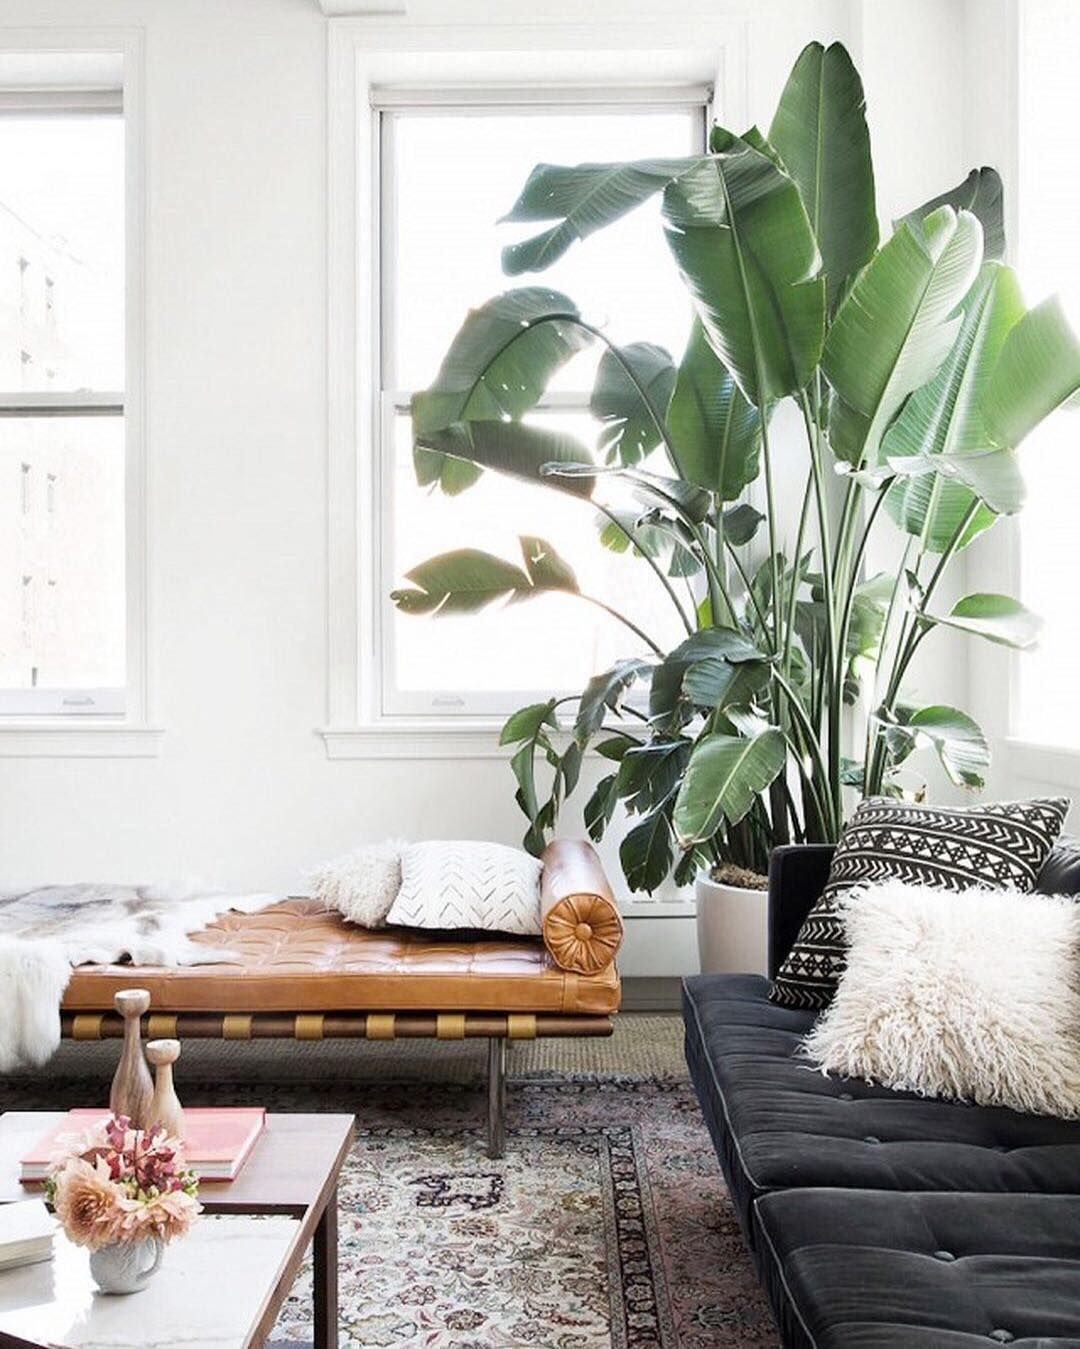 Pin by Kelsey Knipe on Home | Pinterest | Flats, Plants and Living rooms